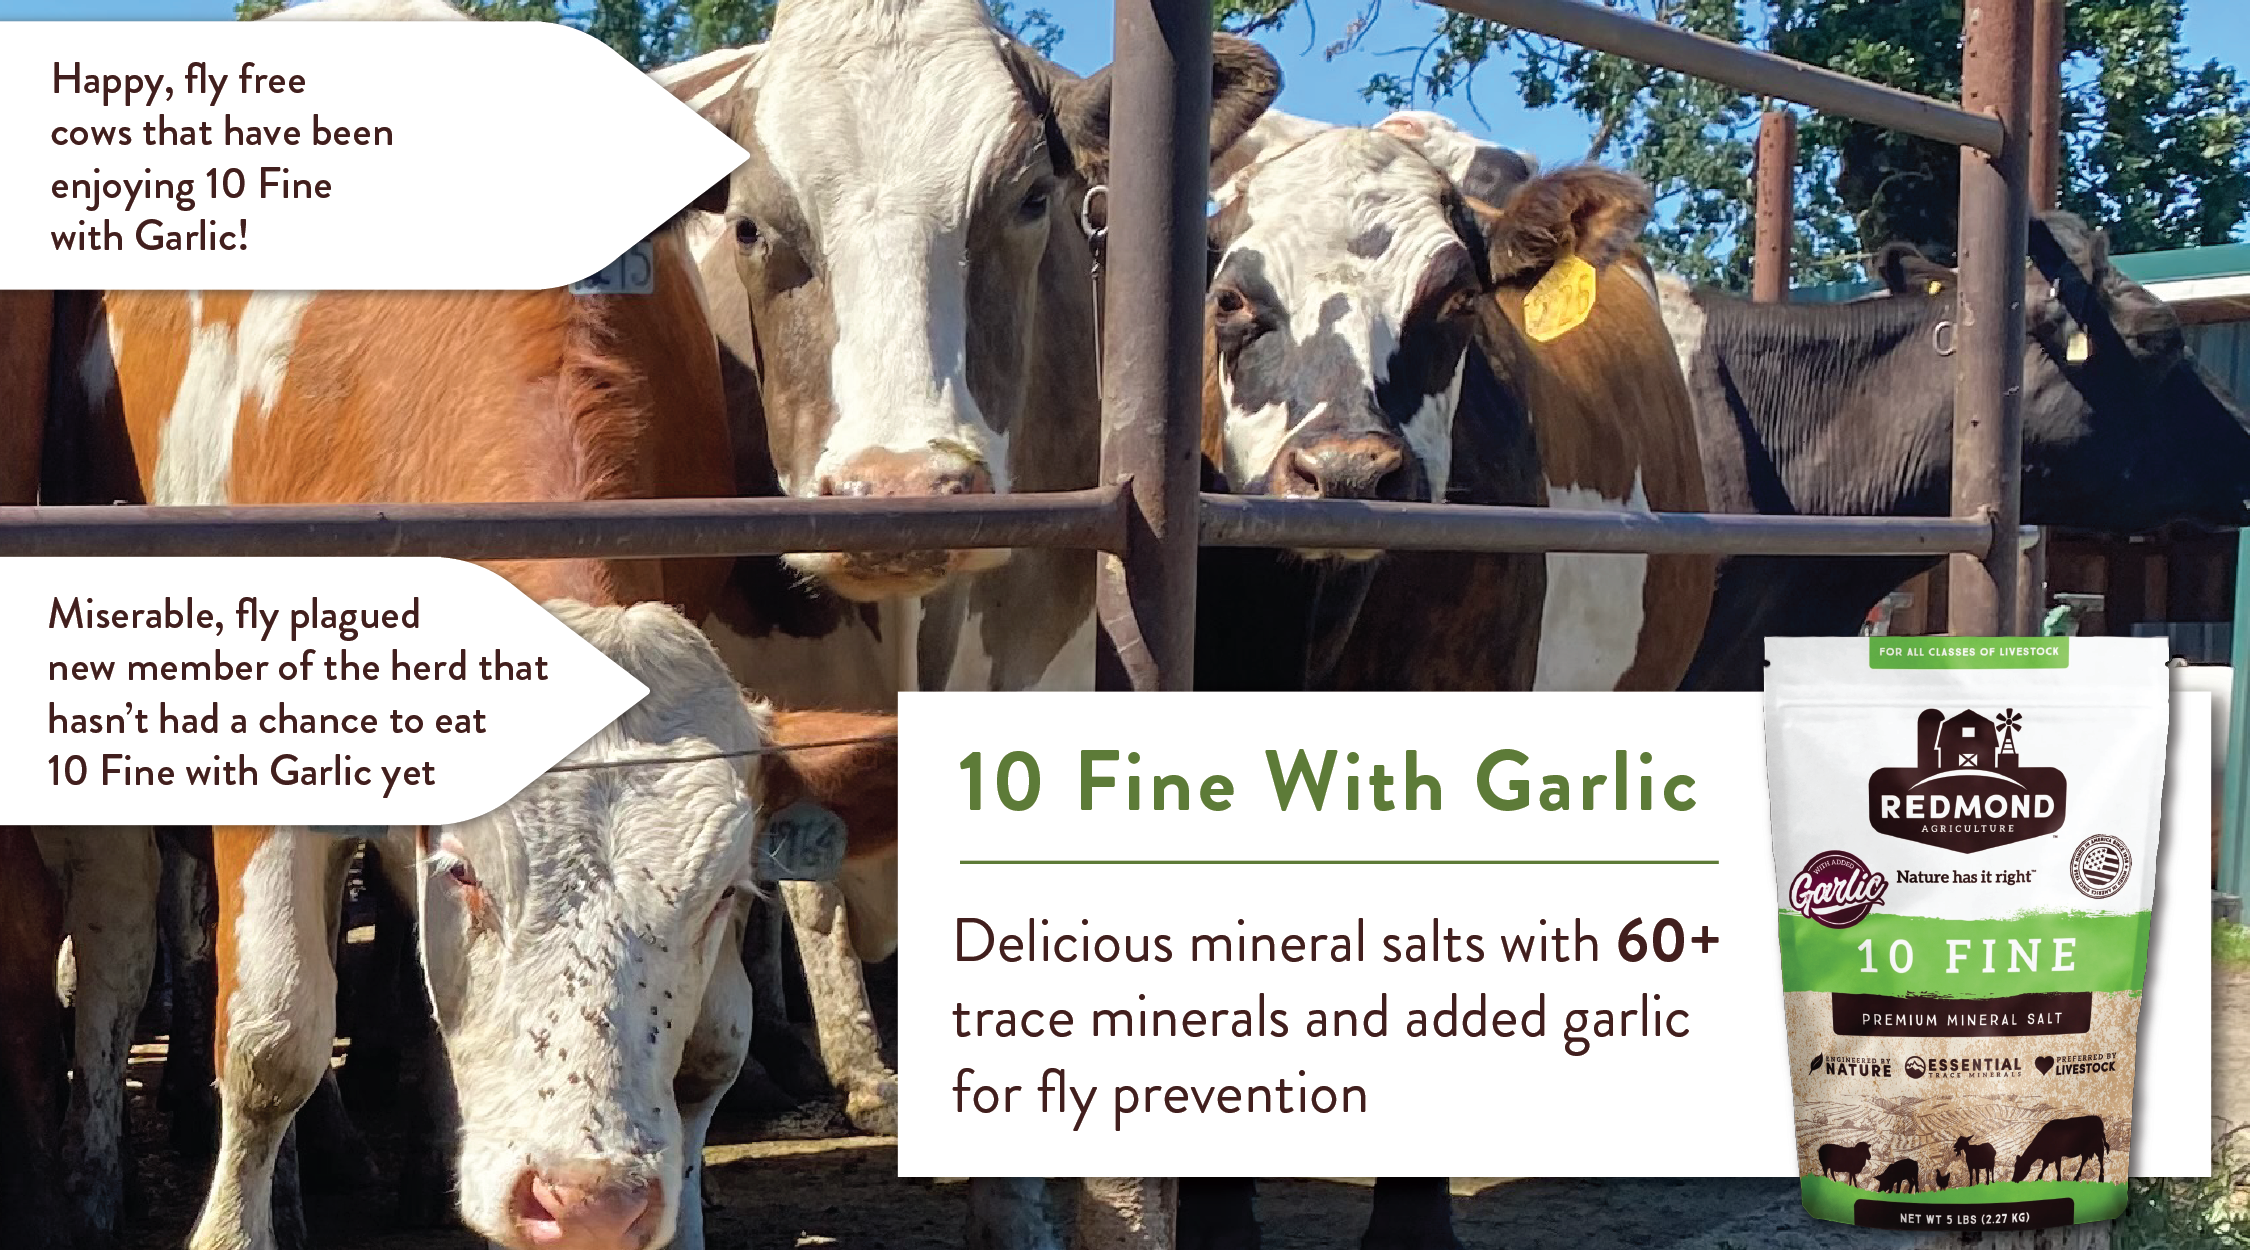 Redmond 10 fine with garlic repels flies and reduces methane output